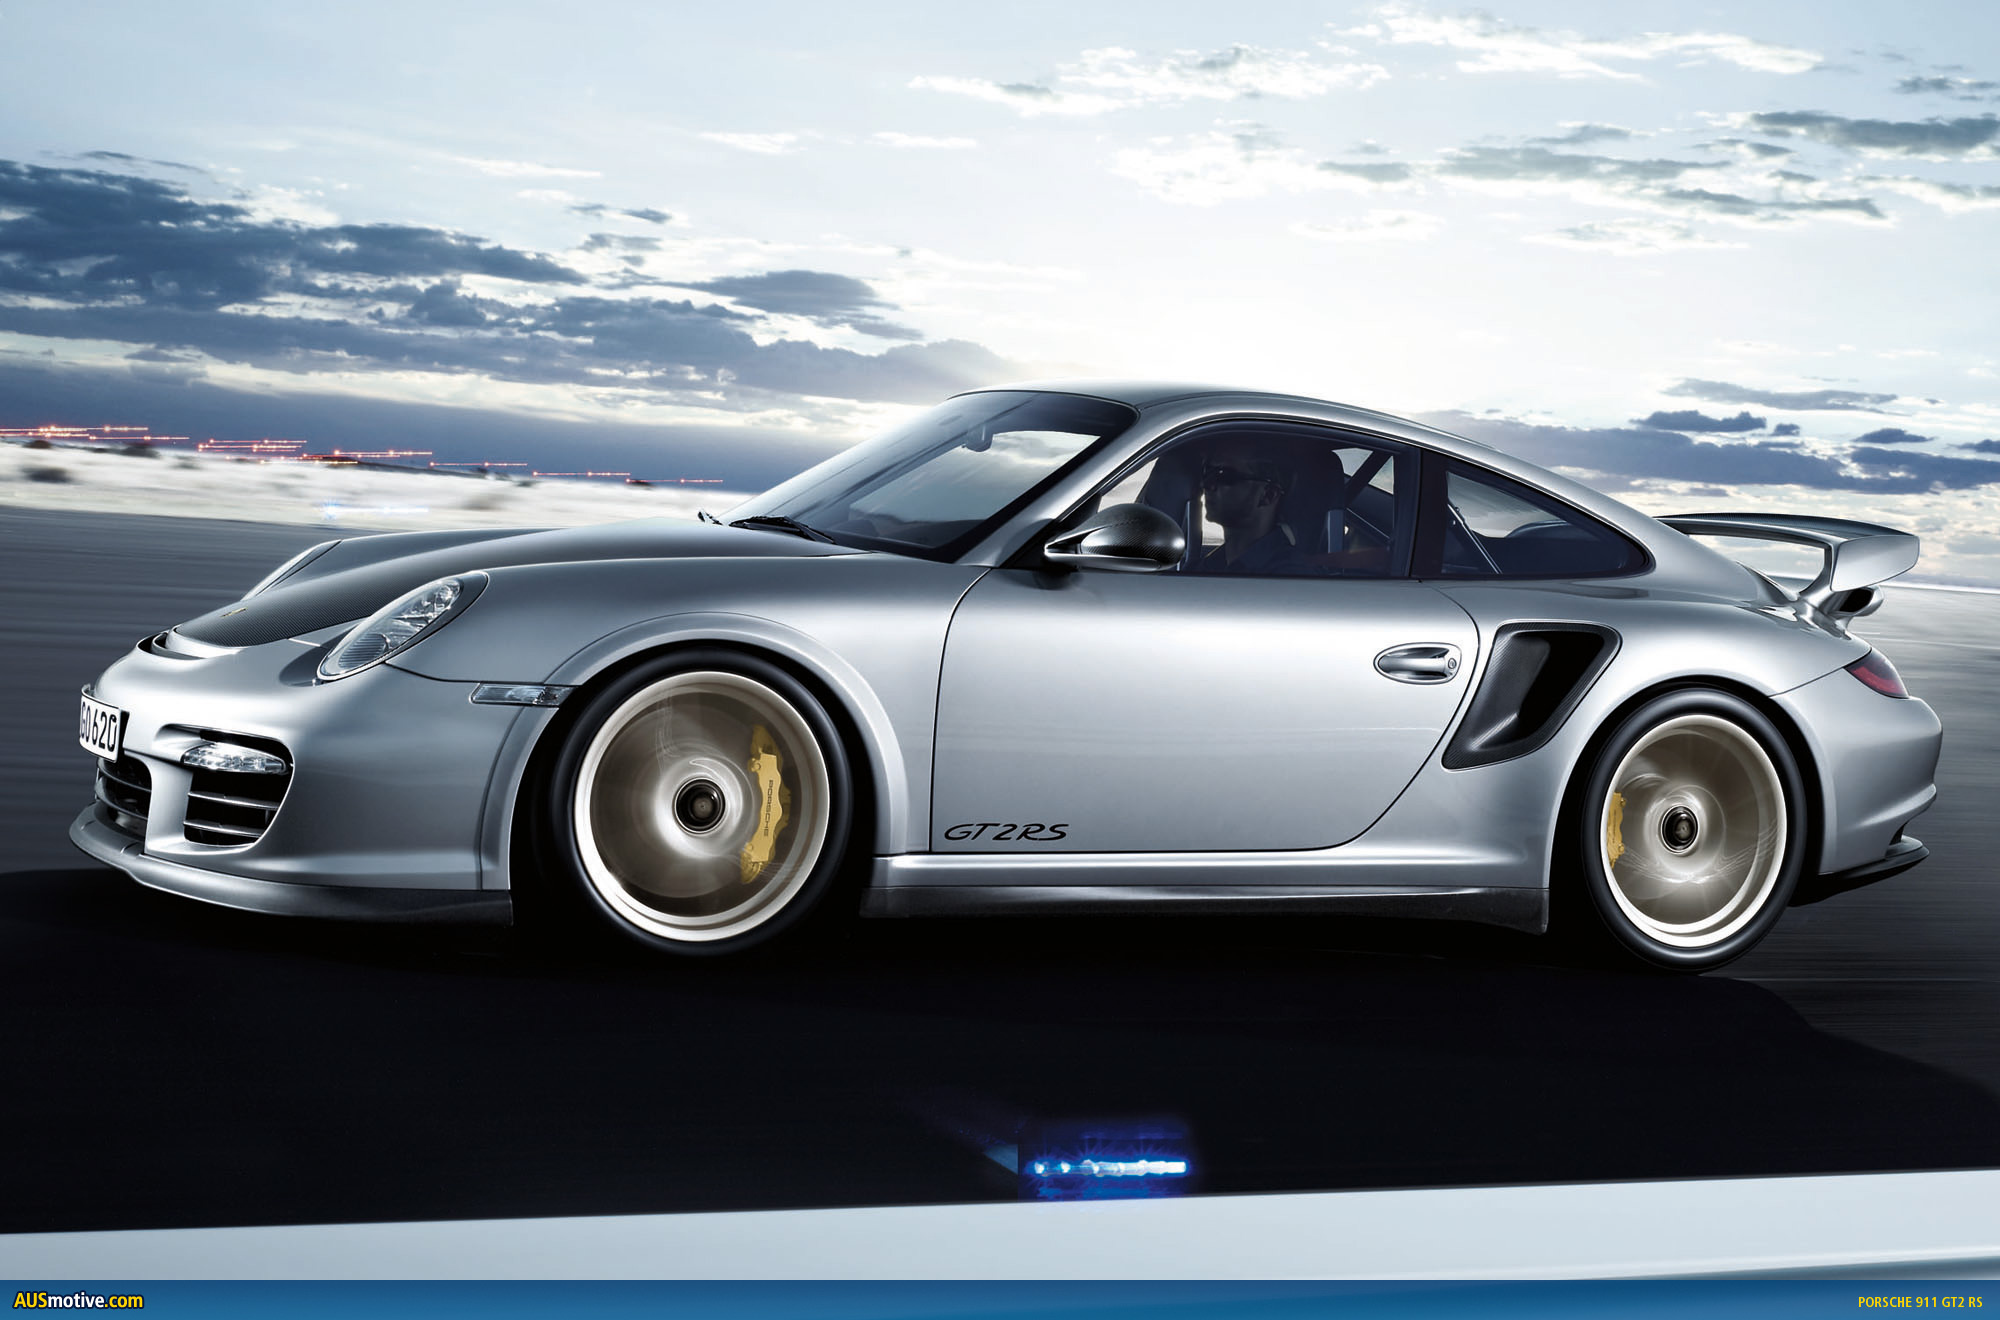 Porsche 911 GT2 RS Turbo Horsepower Most Powerful Street Legal Free Download Image Of